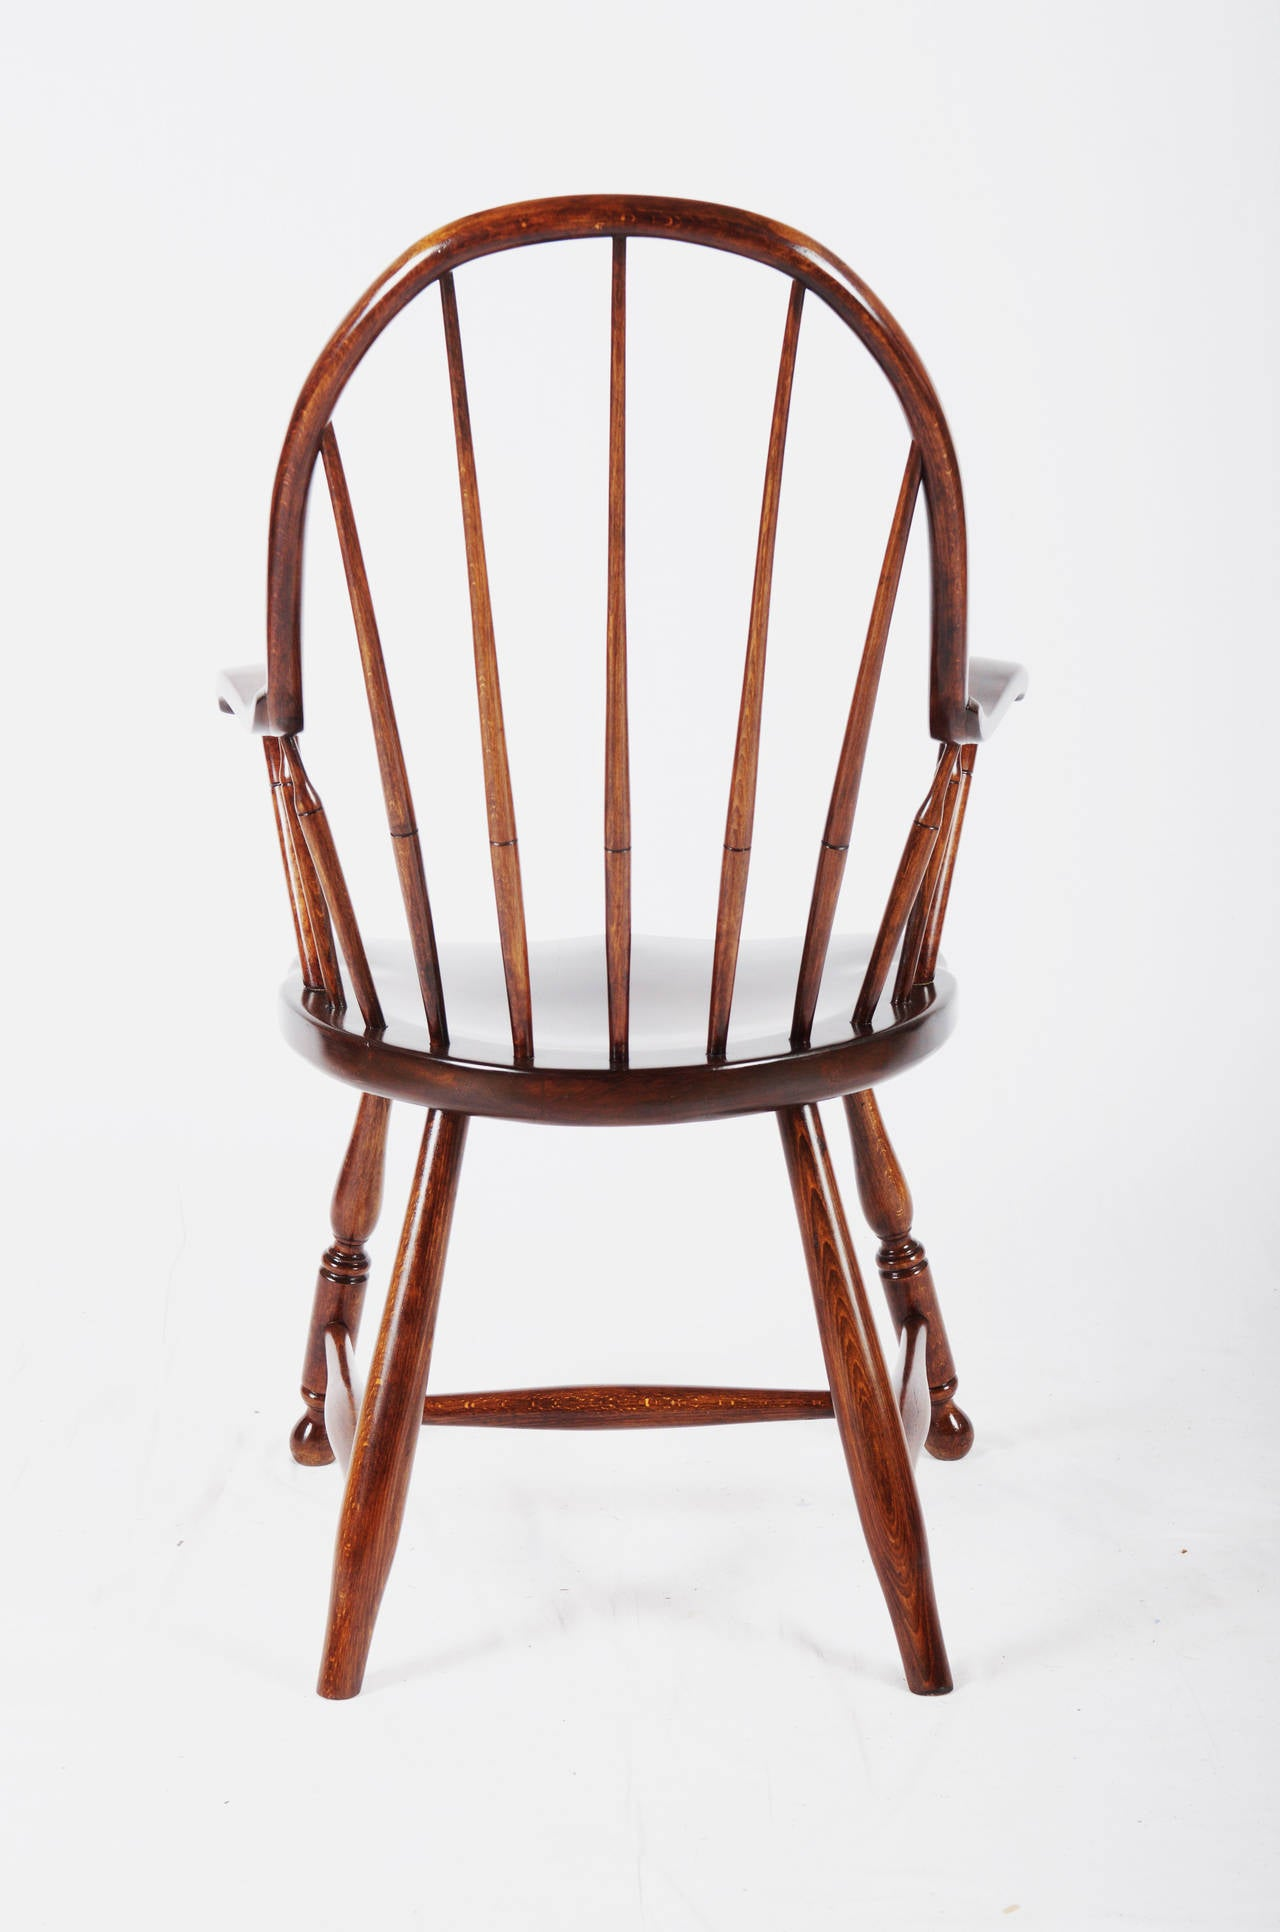 Rare Thonet Windsor Chair attributed to Josef Frank at 1stdibs